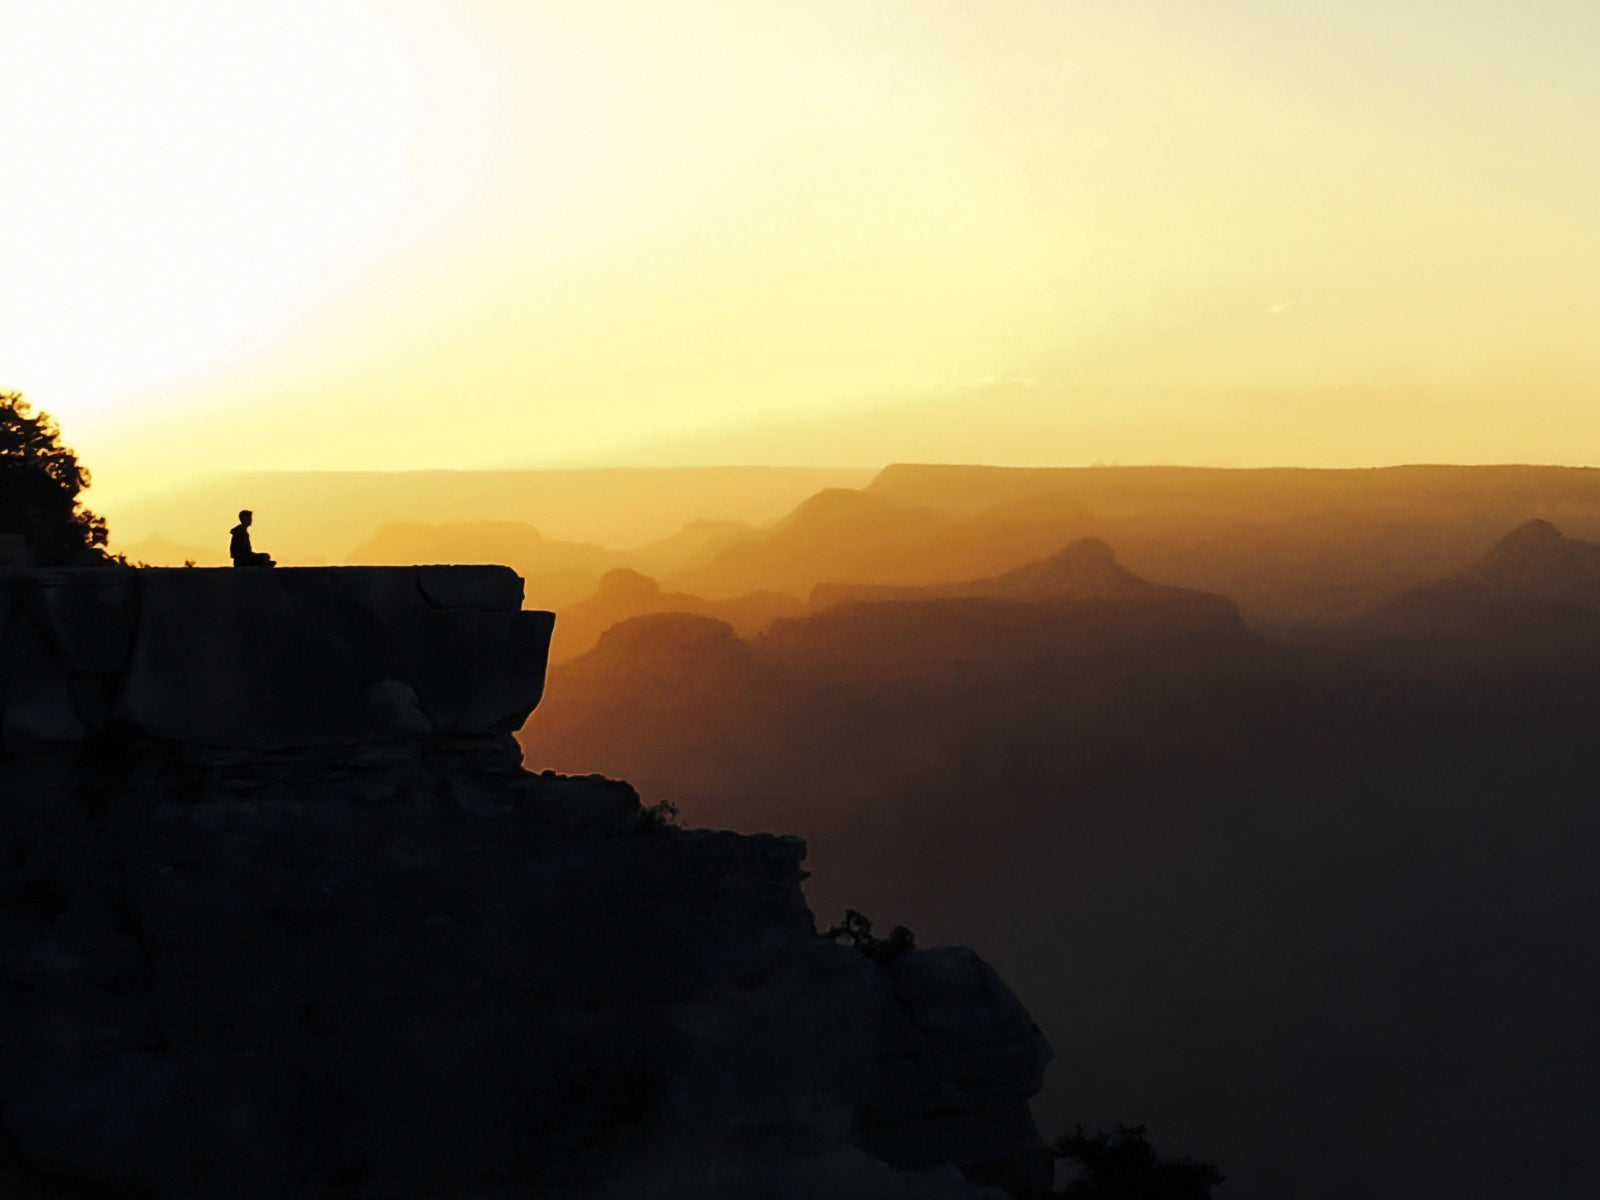 man sitting alone on mountain background is sunset